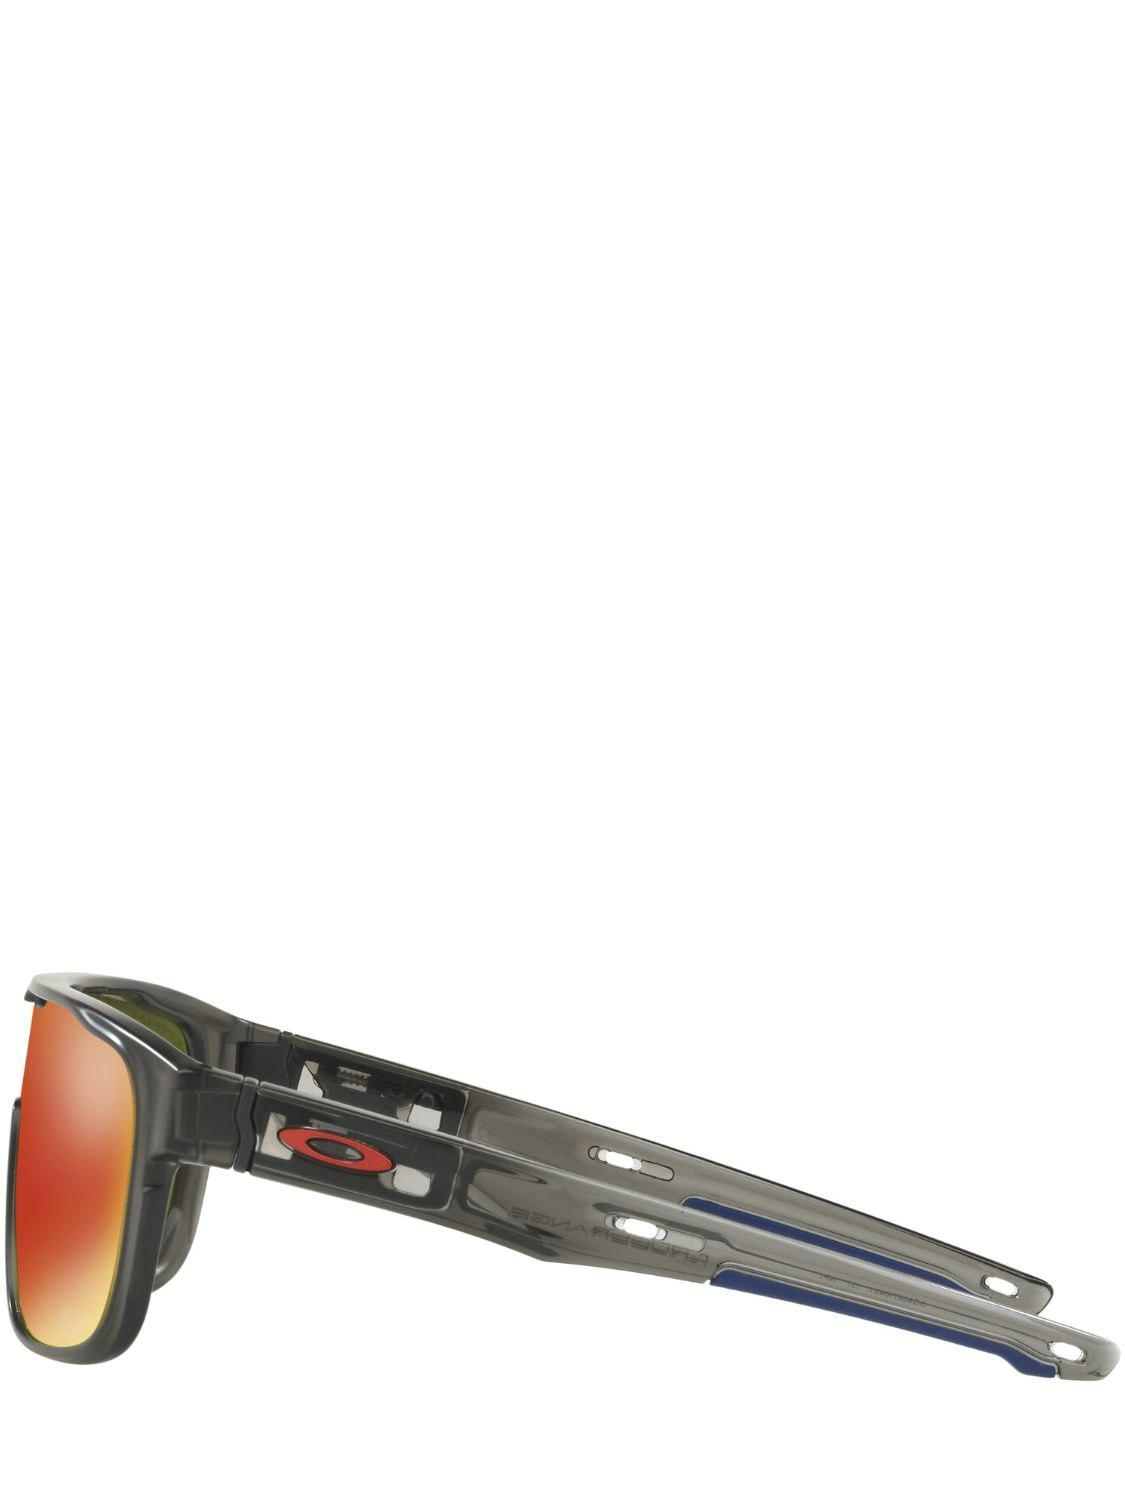 52a6e688e8 Oakley - Gray Crossrange Shield Mttgysmk Sunglasses - Lyst. View fullscreen